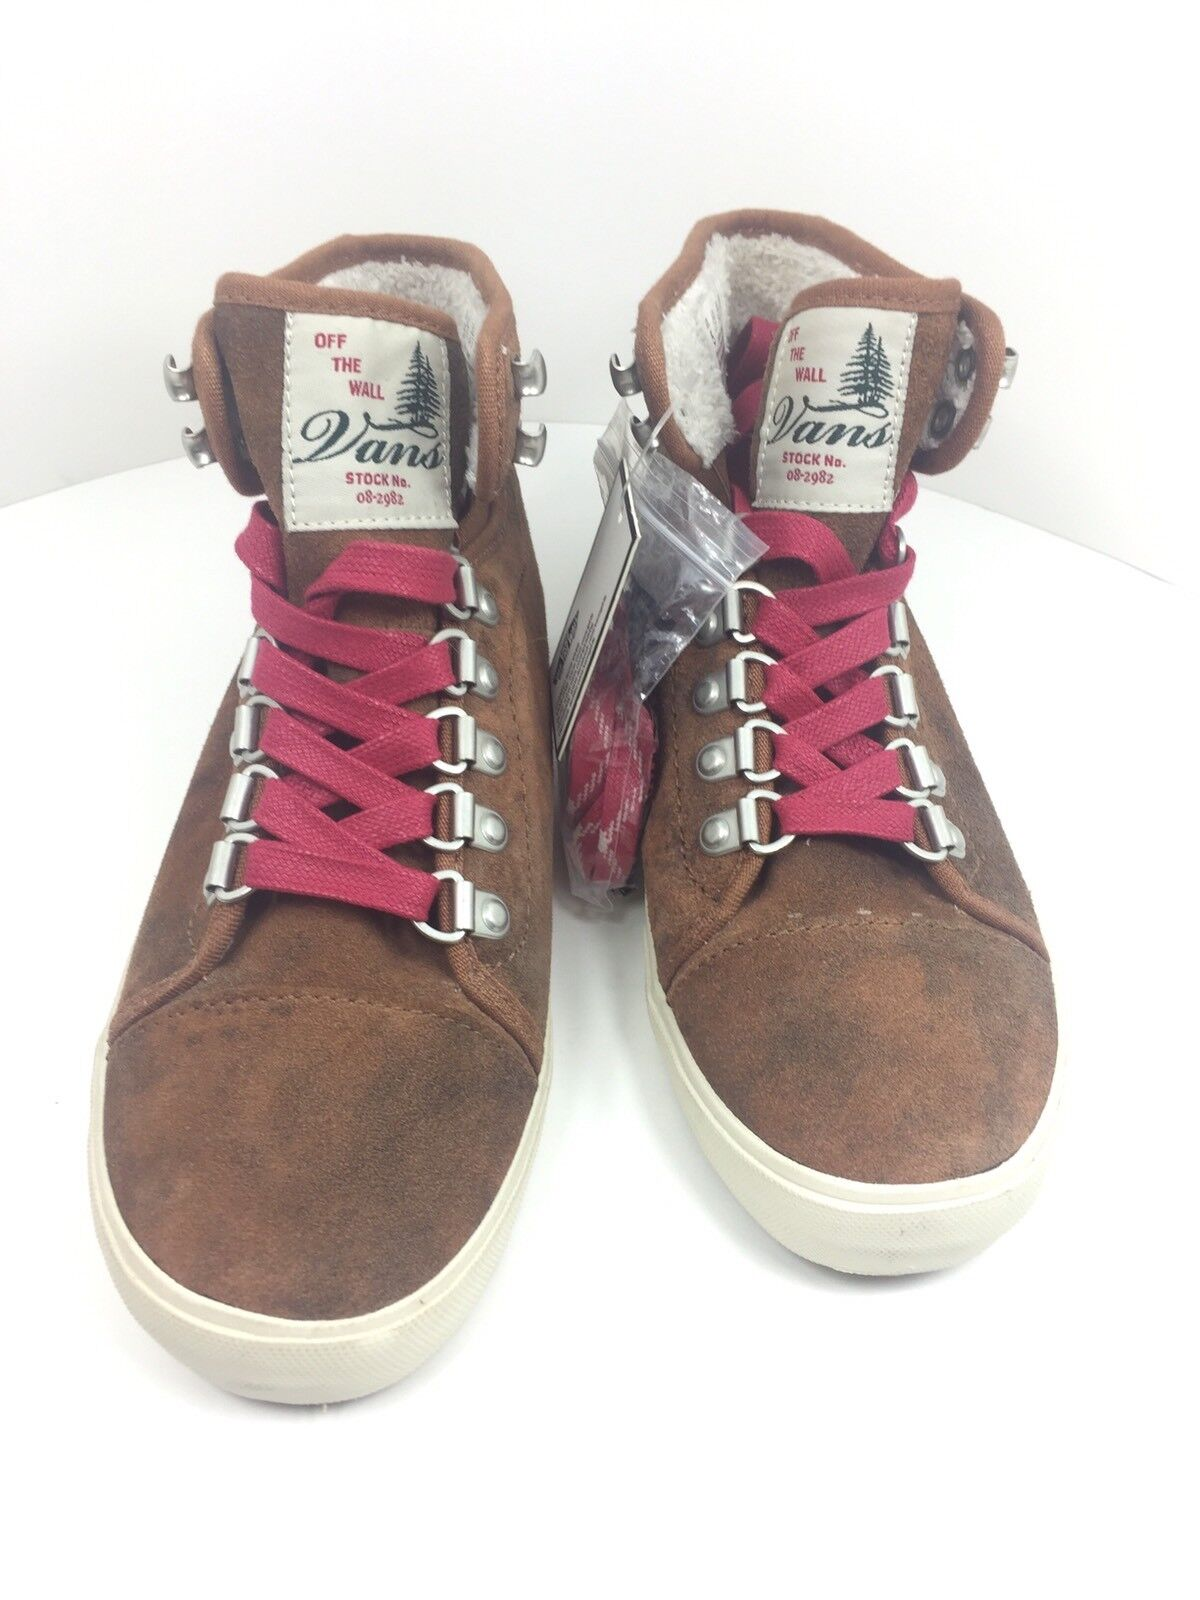 7e295996193970 VANS Women s Hadley Hiker BOOTS Shoes Brown Red SNEAKERS Size 5 for sale  online